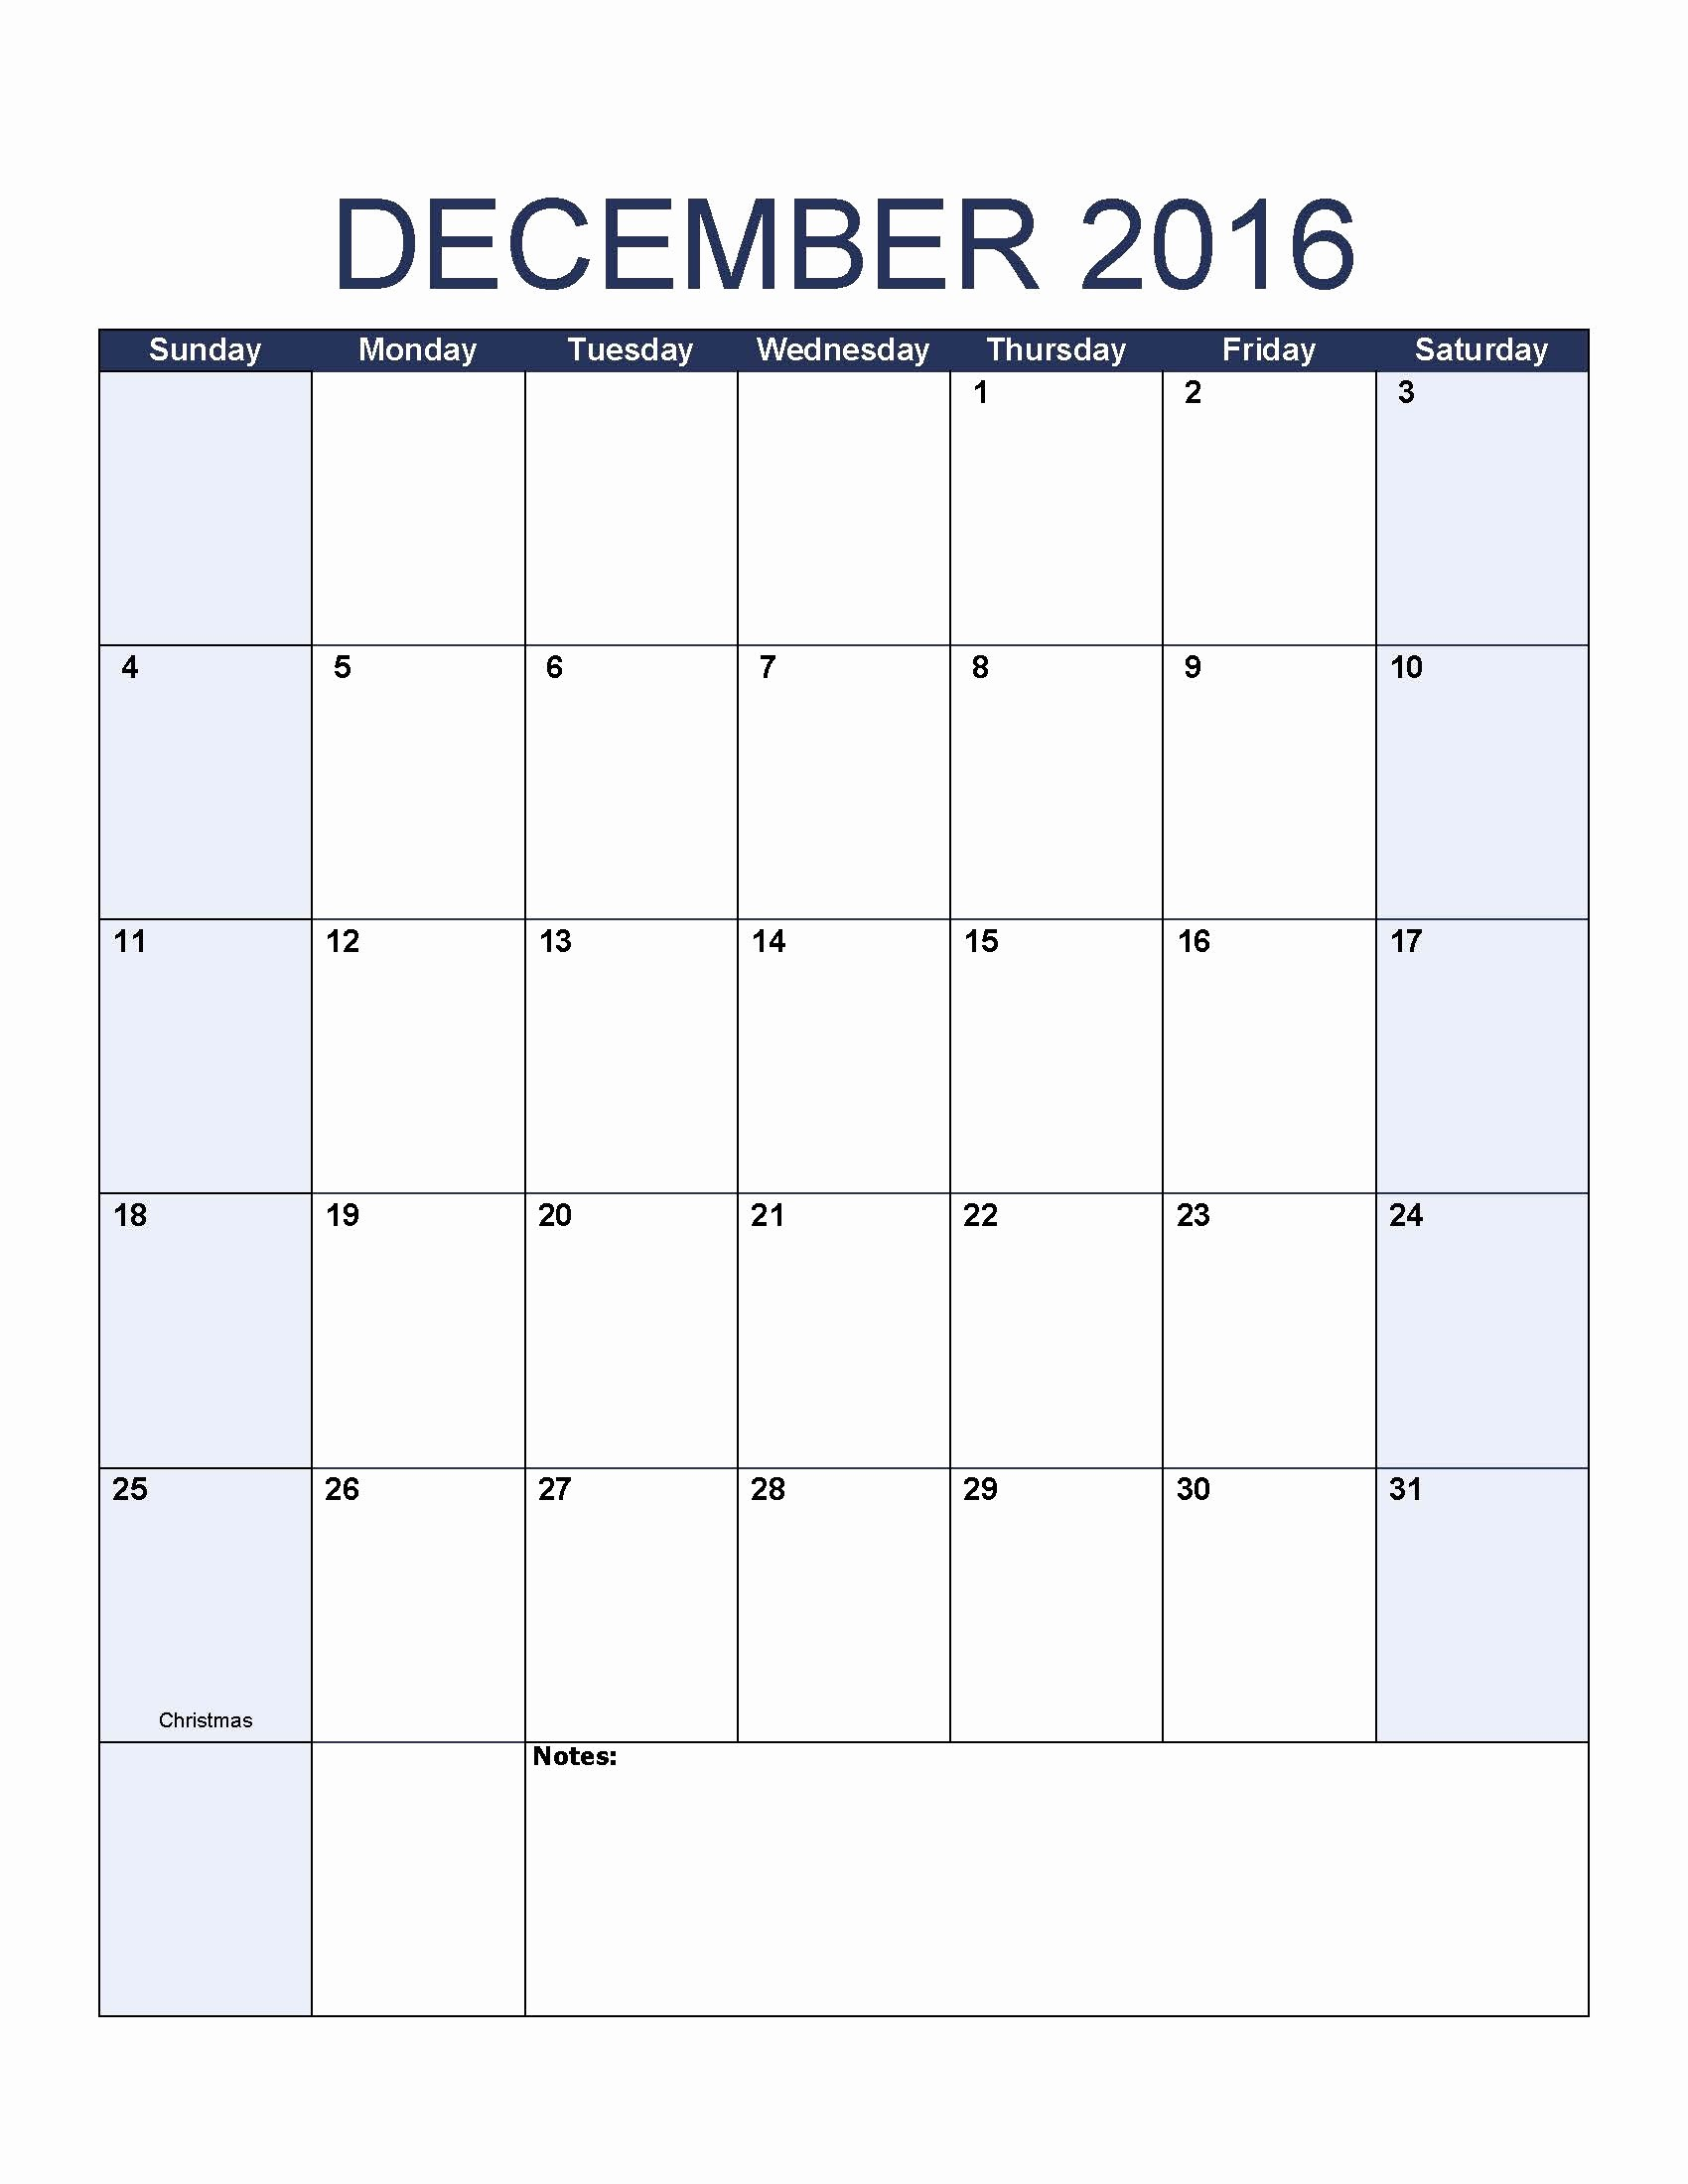 Blank December Calendar 2016 Printable Elegant Blank December 2016 Calendar to Print